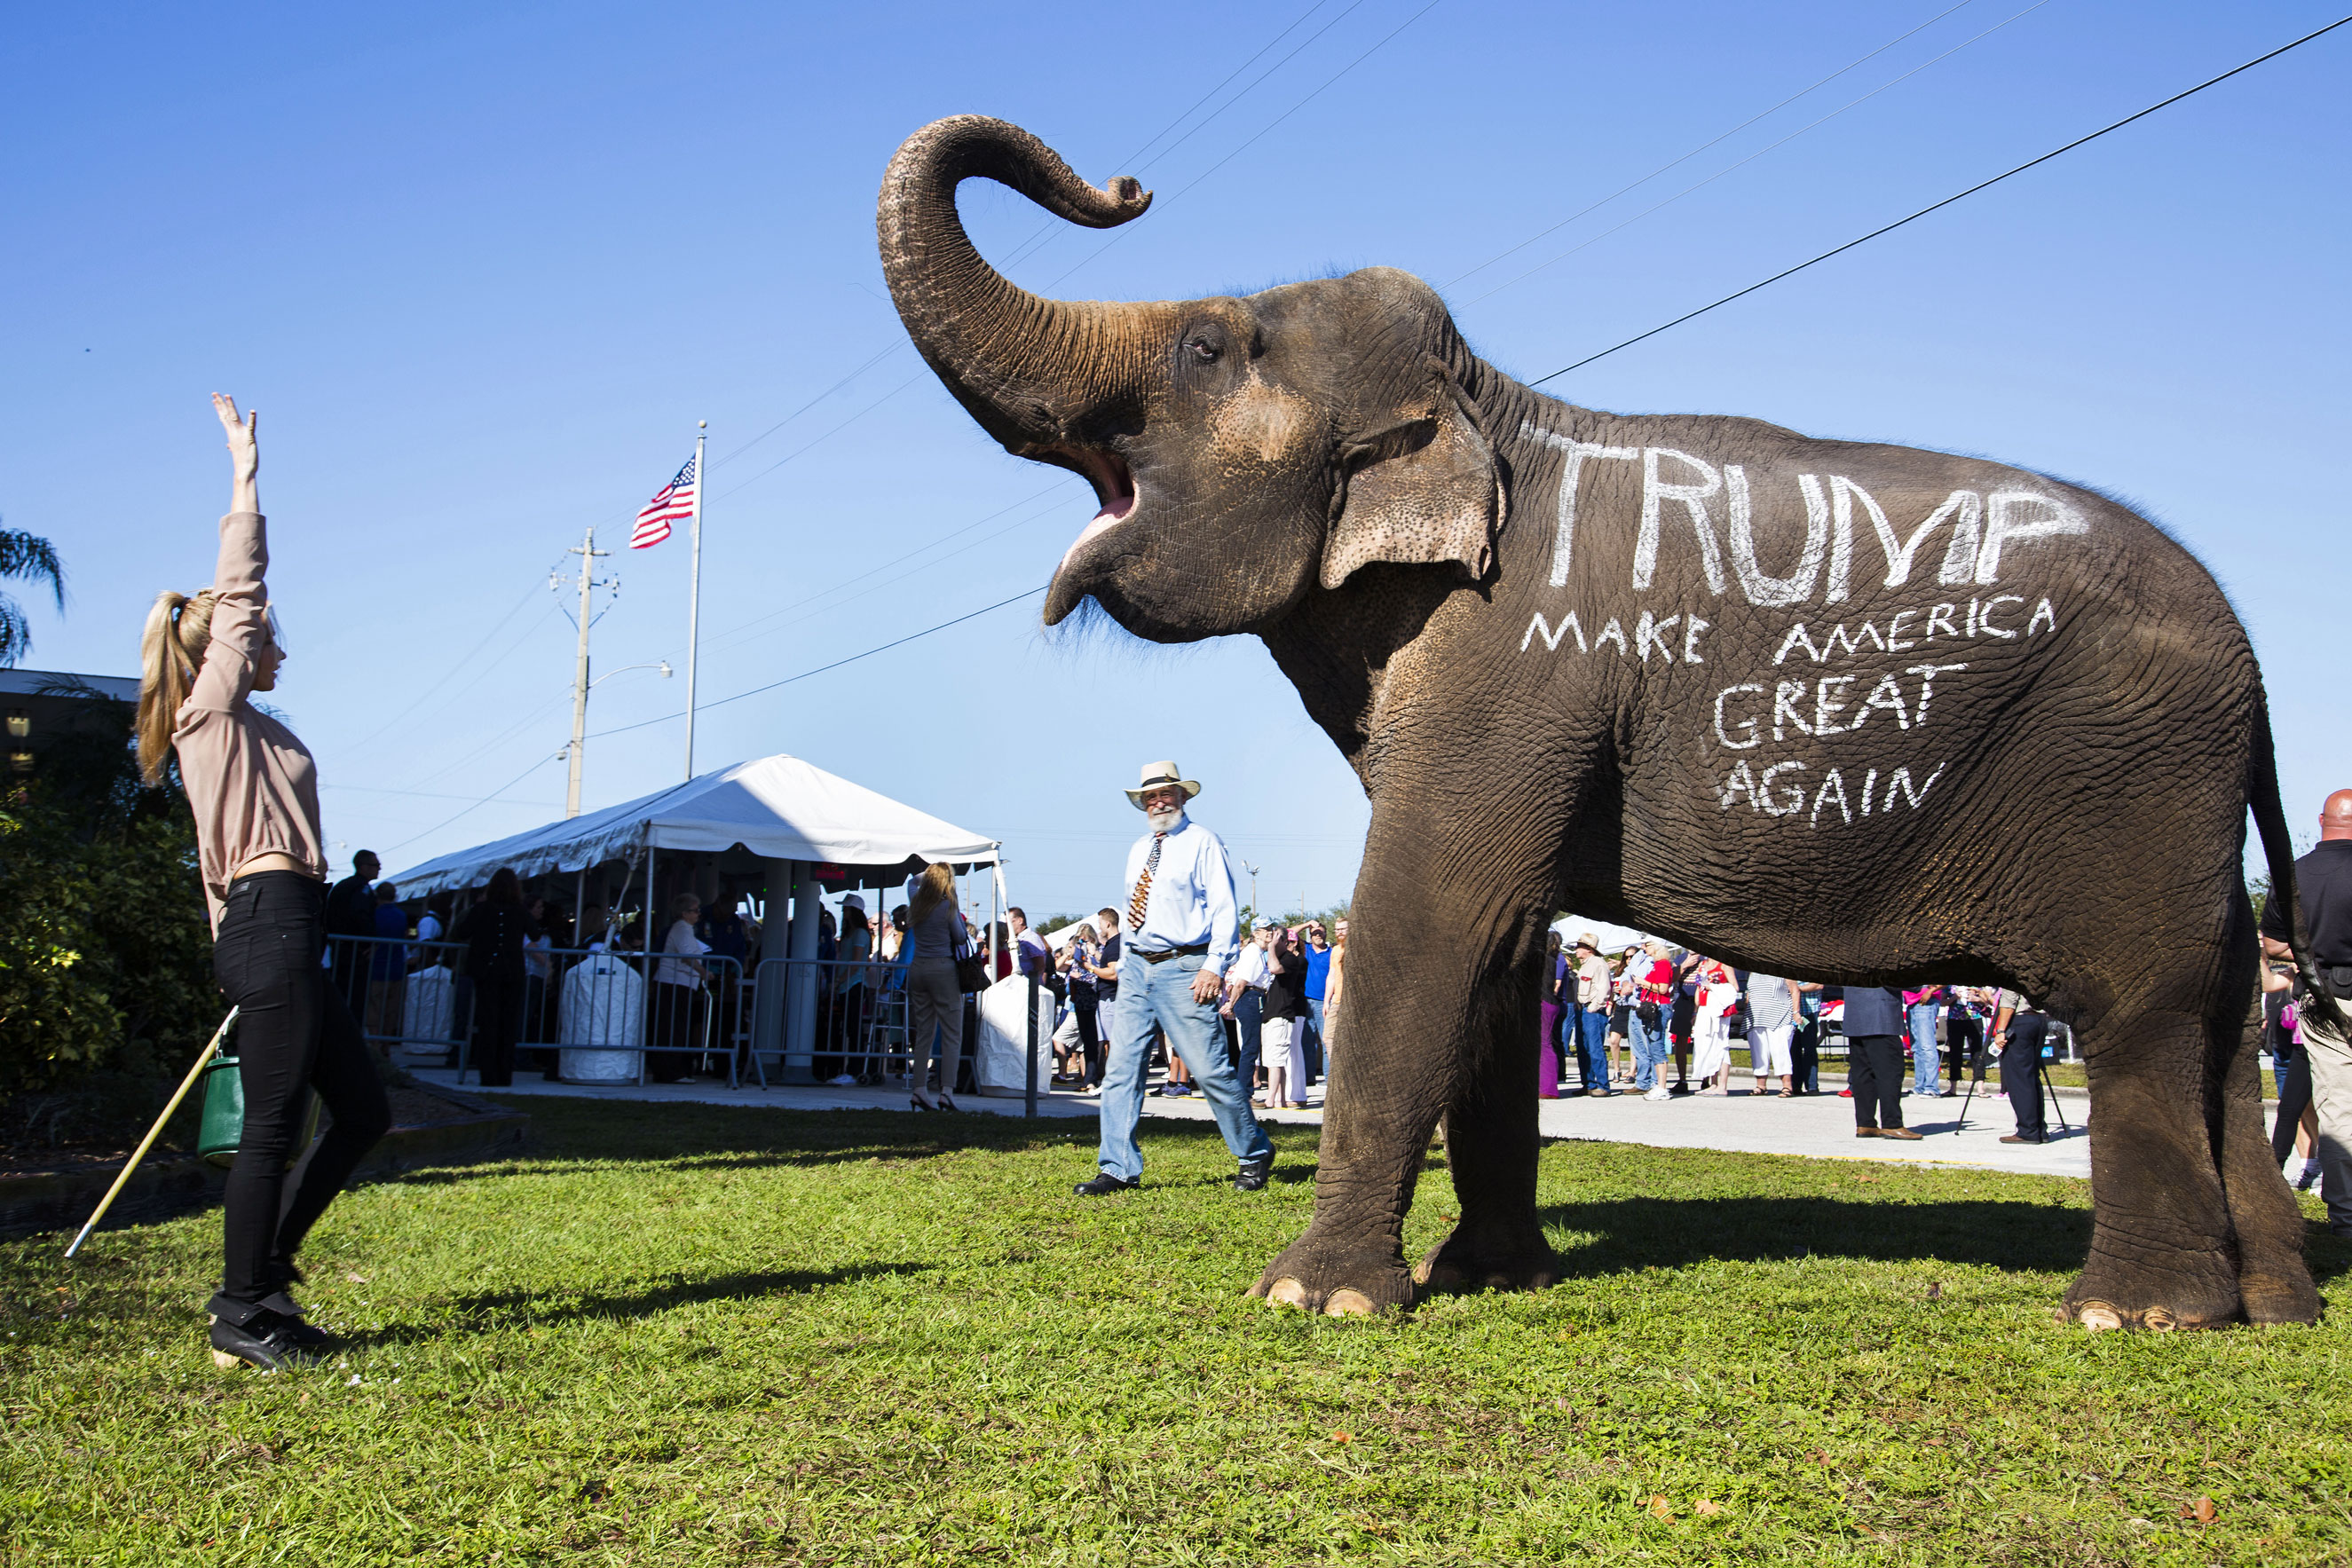 Donald Trump supporters parade an elephant in front of a rally in Sarasota, Fla. Nov. 28, 2015.